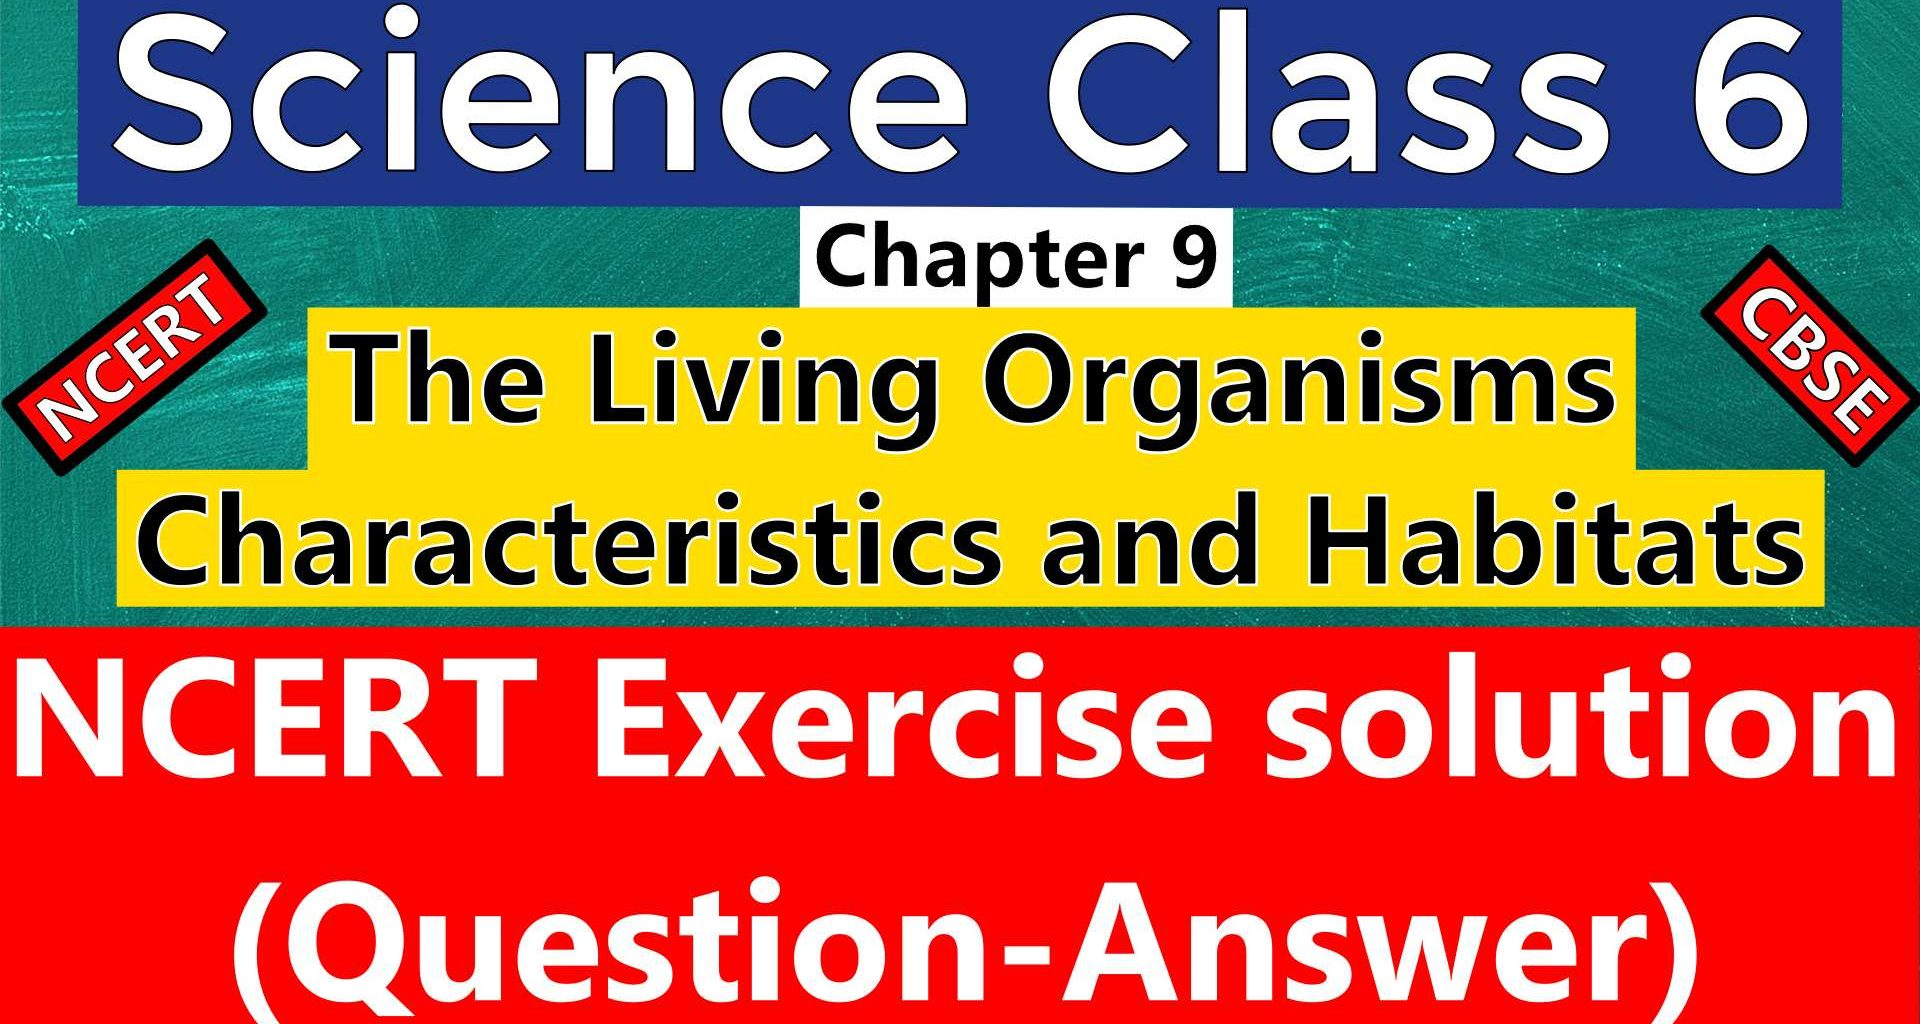 Science Class 6 – Chapter 9 -The Living Organisms Characteristics and Habitats- NCERT Exercise Solutions (Question-Answer)